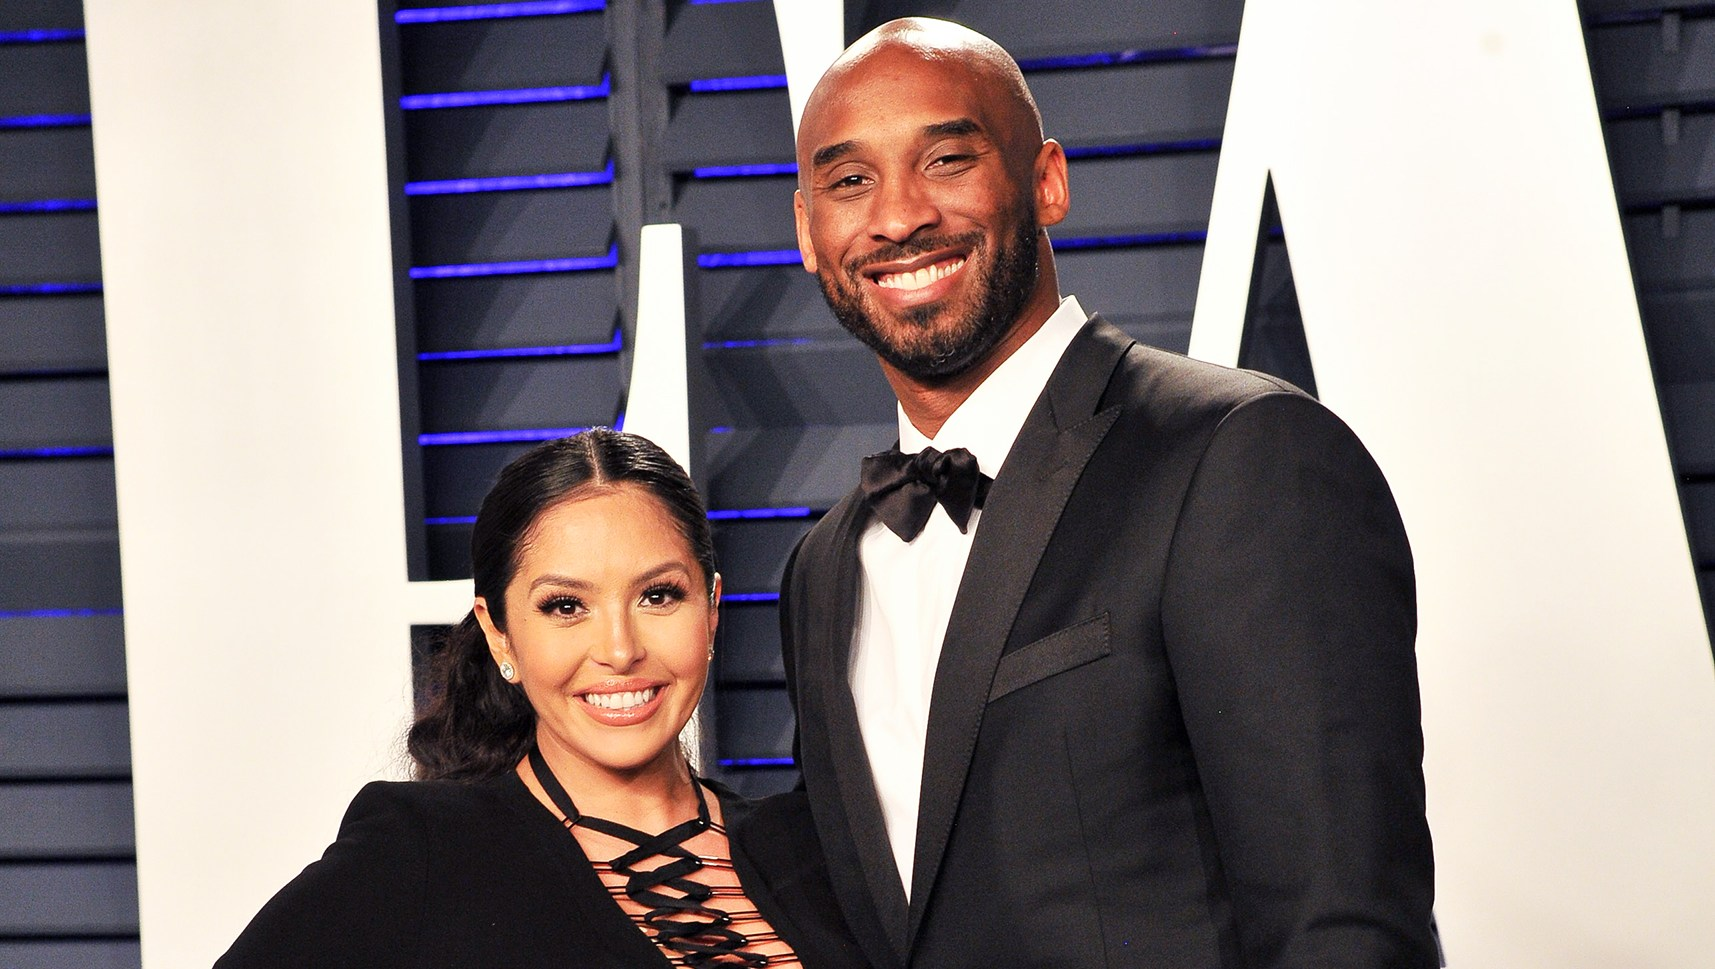 Kobe Bryant Says His Wife Wants to Try for a Boy After Baby No. 4: 'We'll See if I Can Deliver'